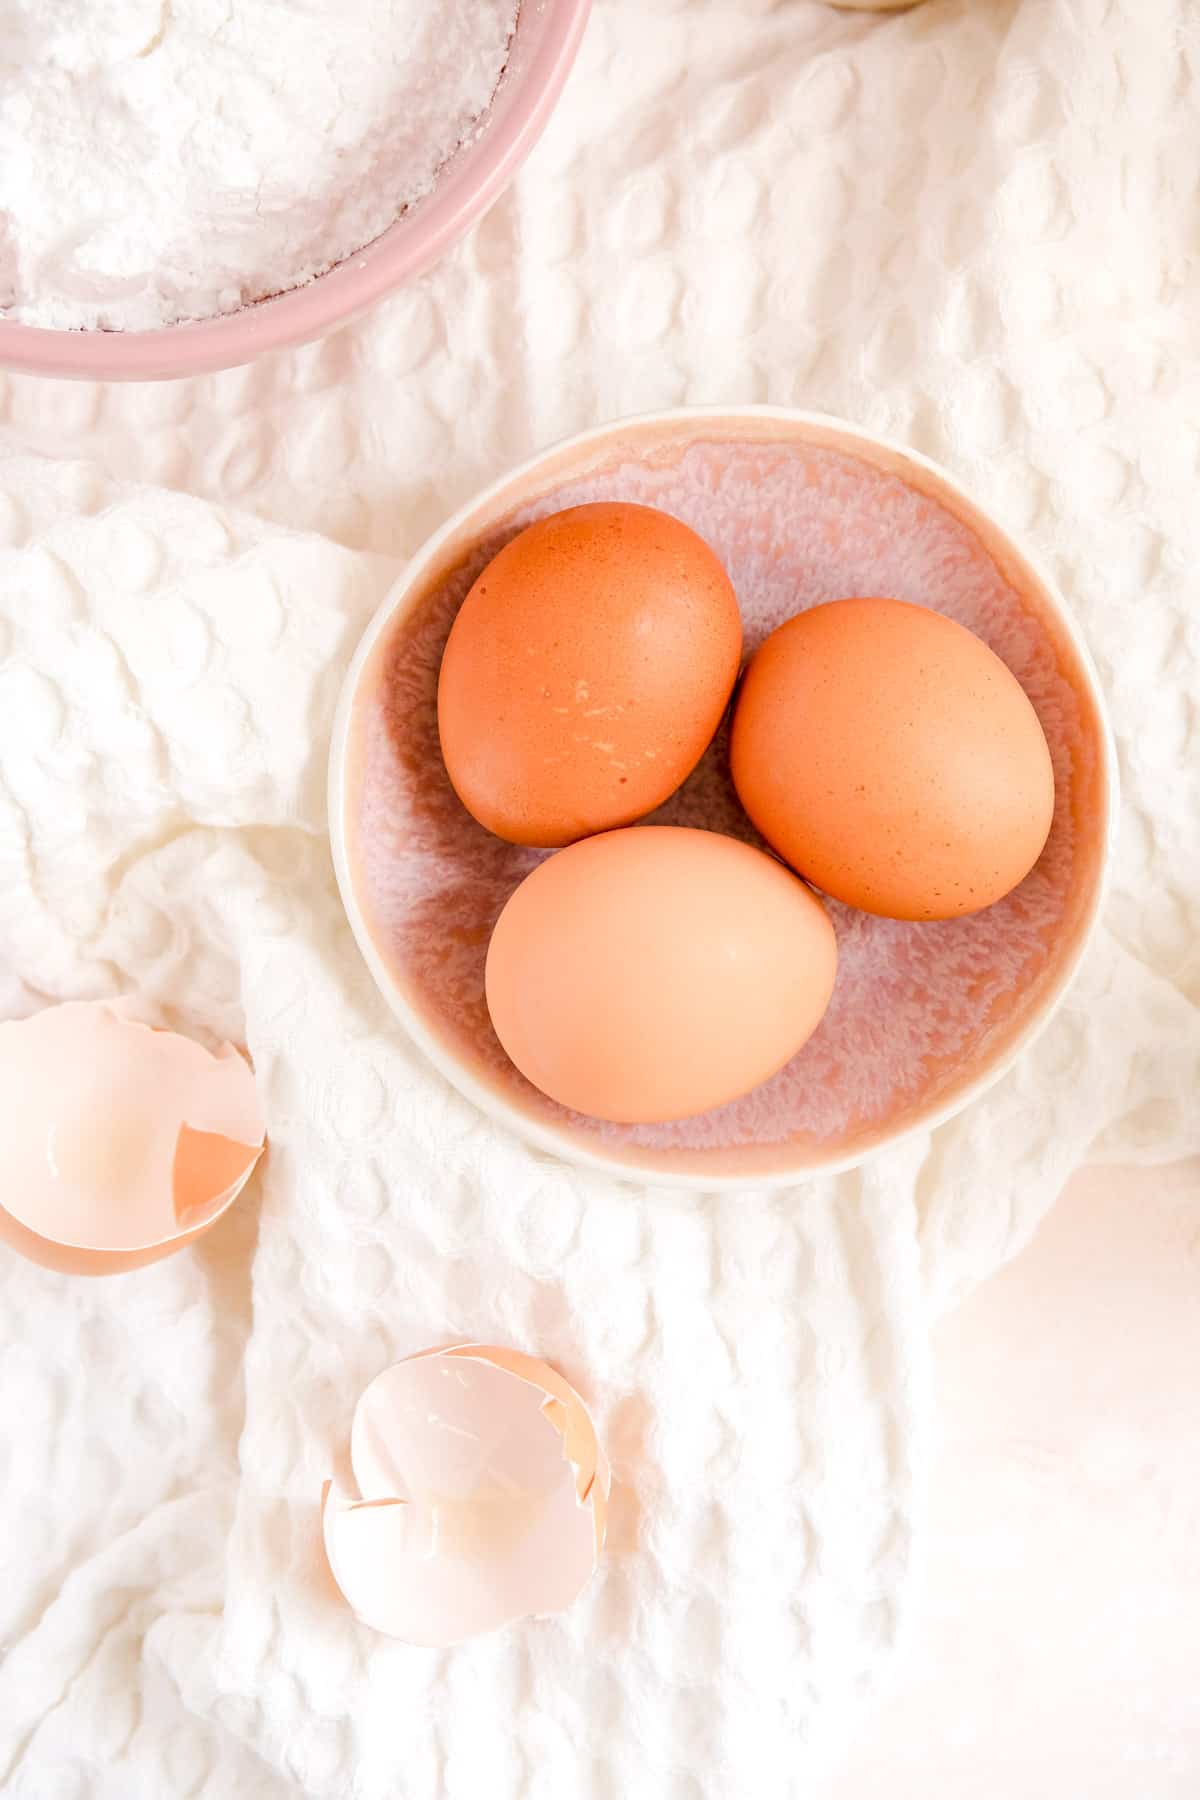 a bowl of 3 brown eggs with cracked egg shells on the side.